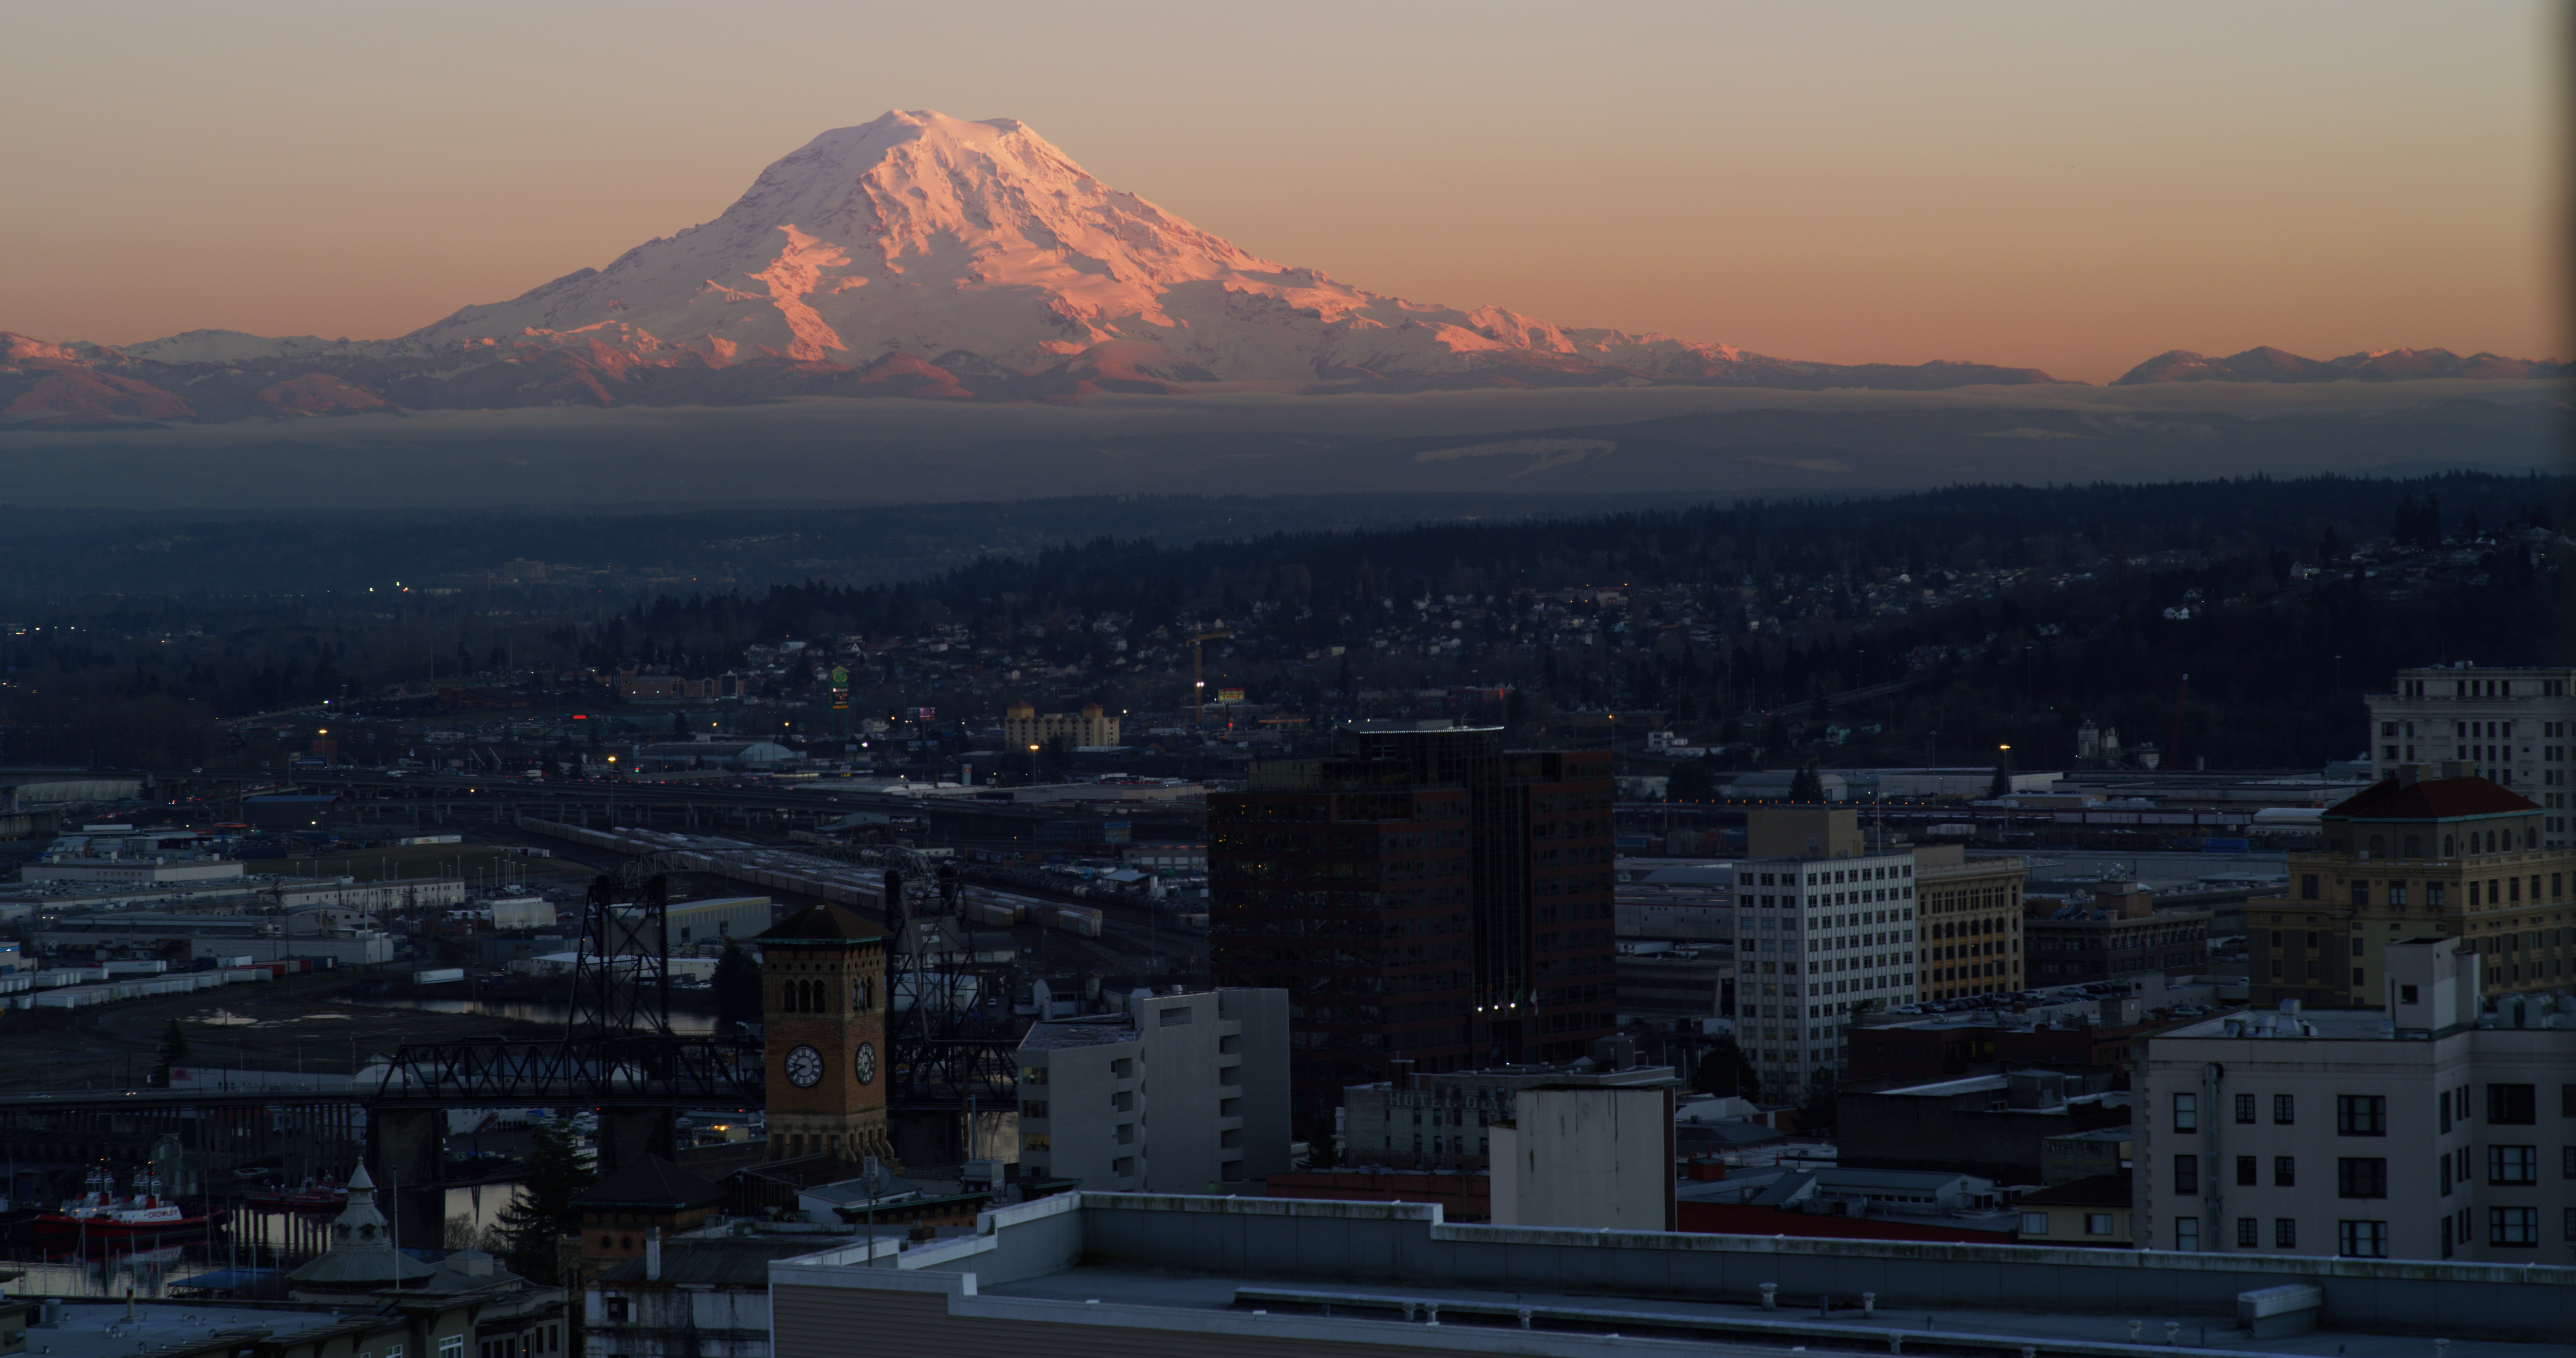 The mountain at sunset viewed from high above downtown Tacoma.